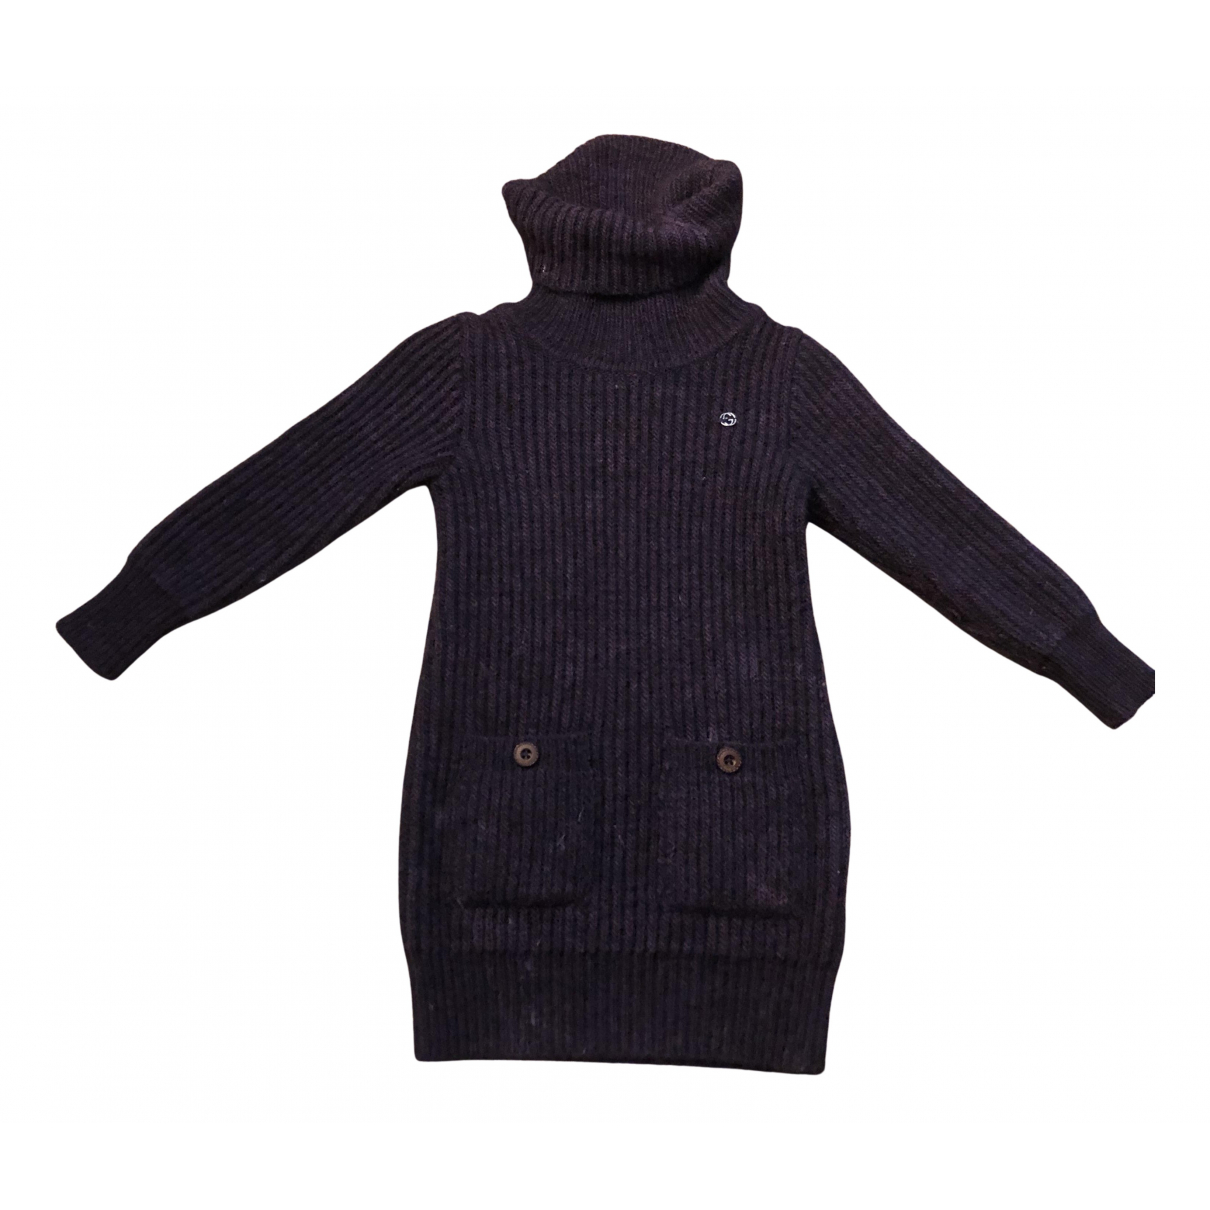 Gucci N Purple Wool Knitwear for Kids 4 years - up to 102cm FR